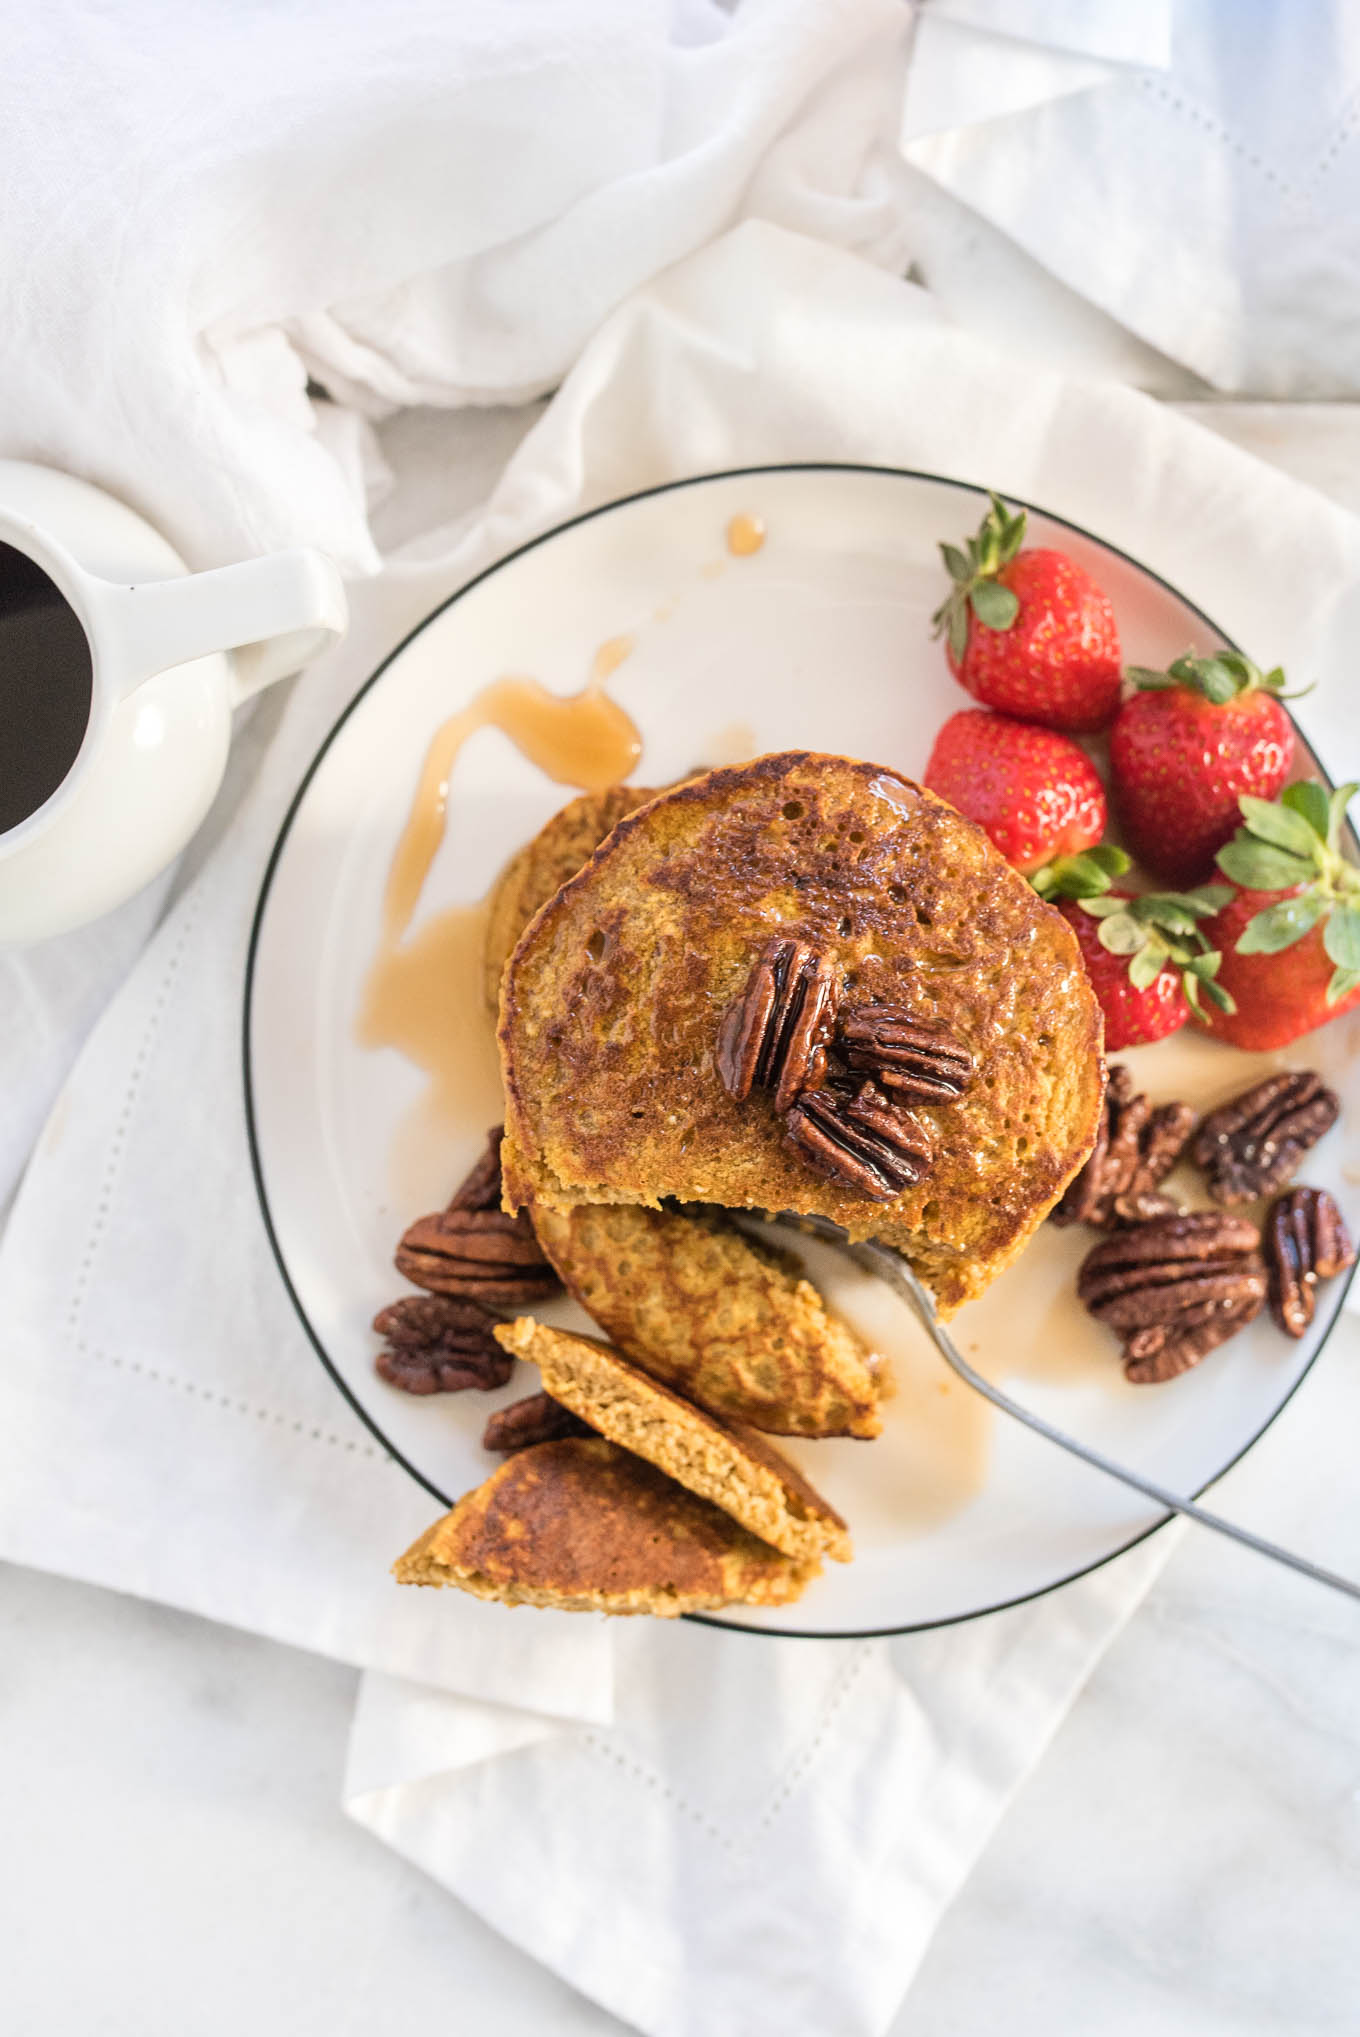 Sweet Potato Oat Blender Pancakes are made right in your blender and full of whole foods, nutritious ingredients.